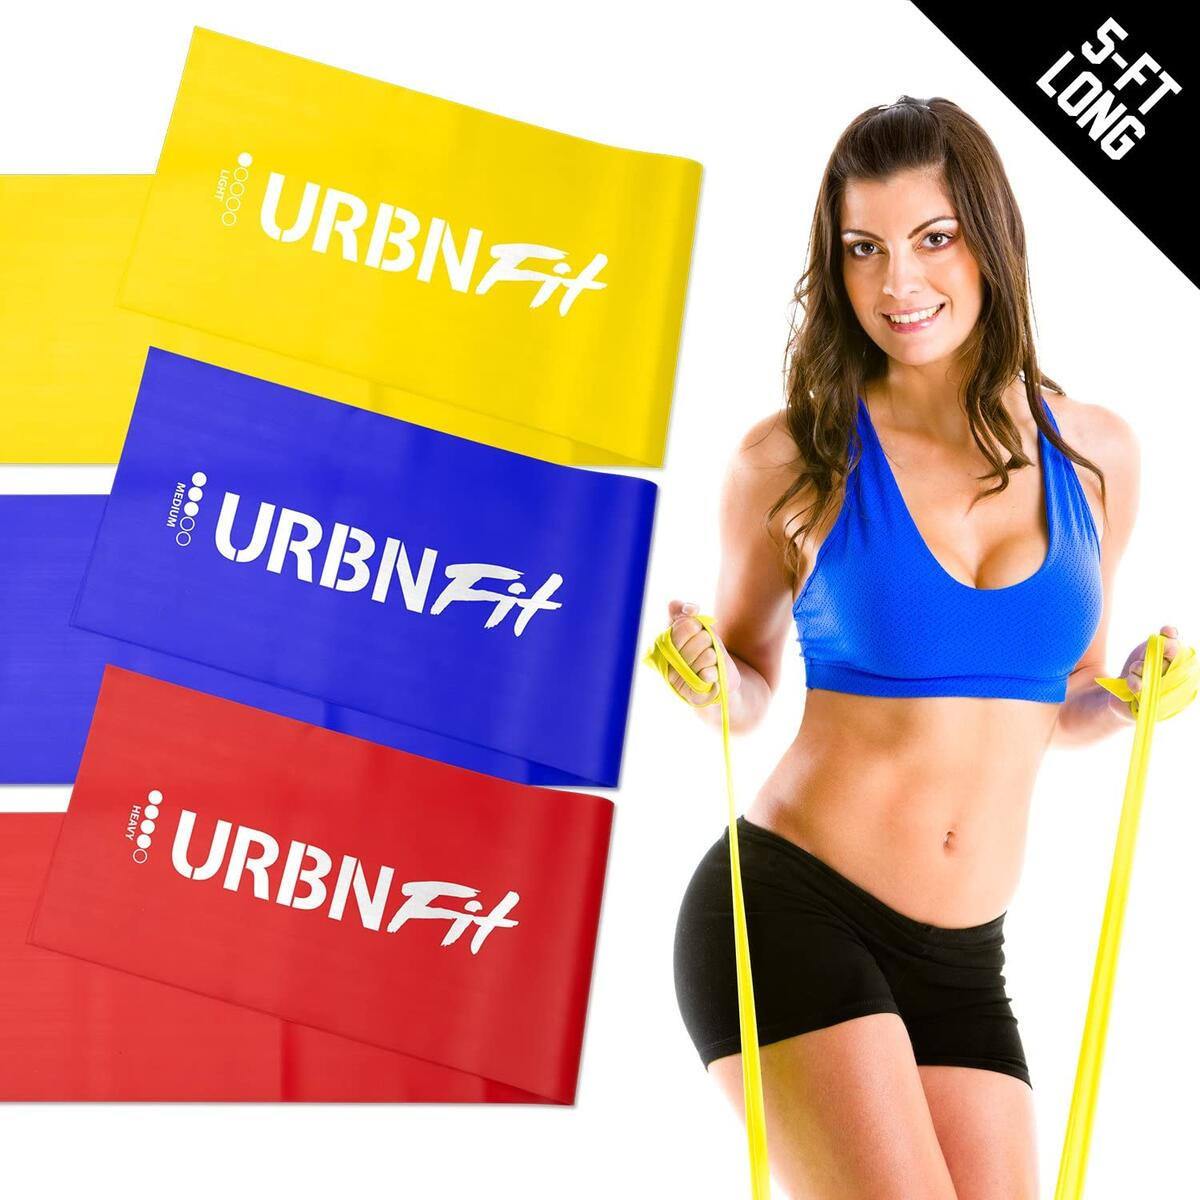 URBNFit Resistance Bands - Long Rubber Exercise Band for Men & Women - Set of 3 for Stretching, Exercises, Physical Therapy, Fitness, Working Out & Strength Gain - with Bonus Workout Guide & Anchor